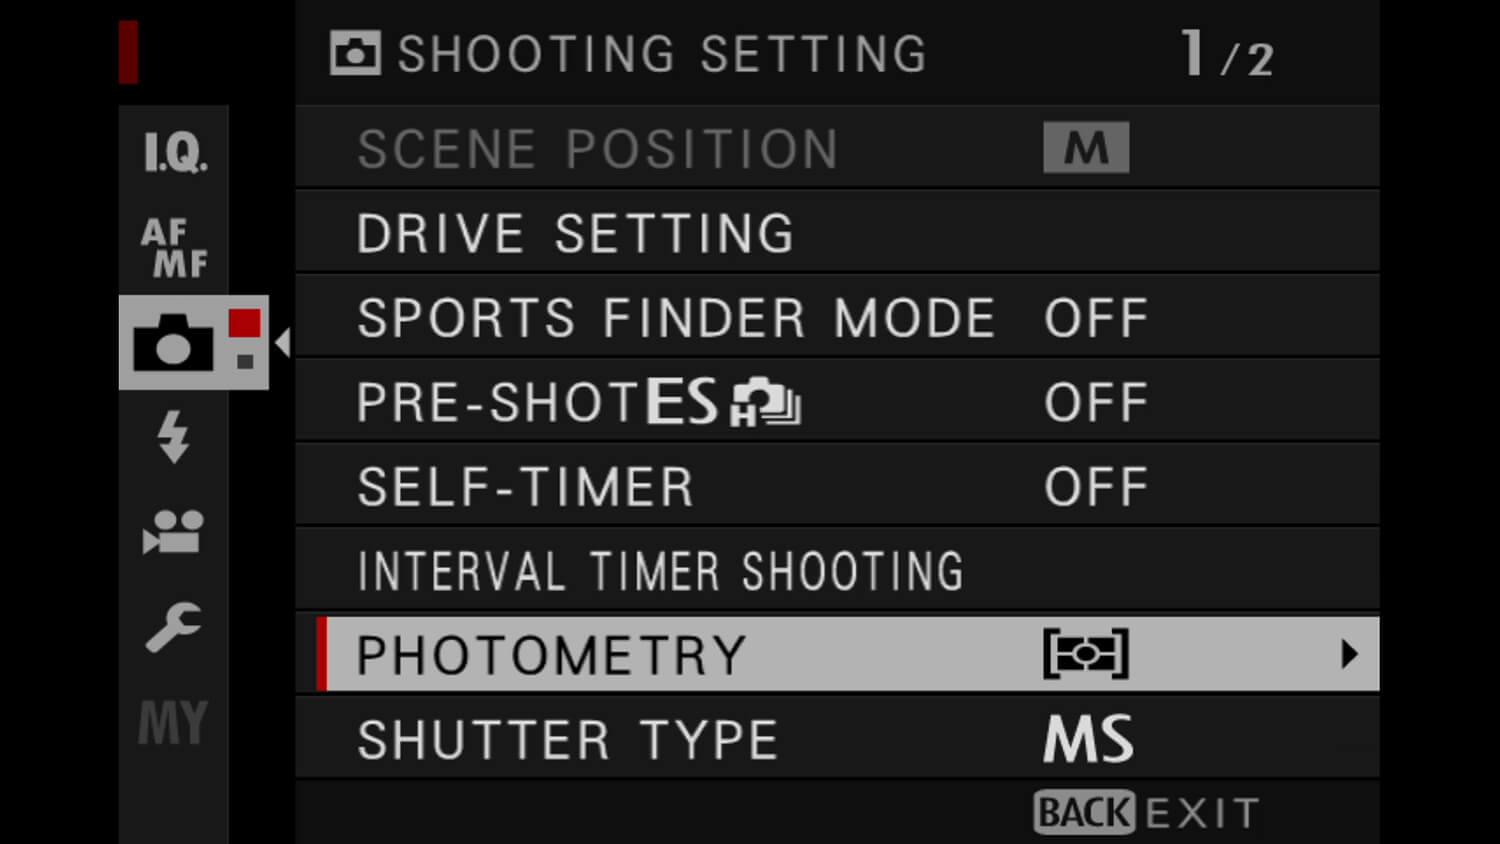 Learn photography with Fujifilm, Which Metering Mode Should You Choose?